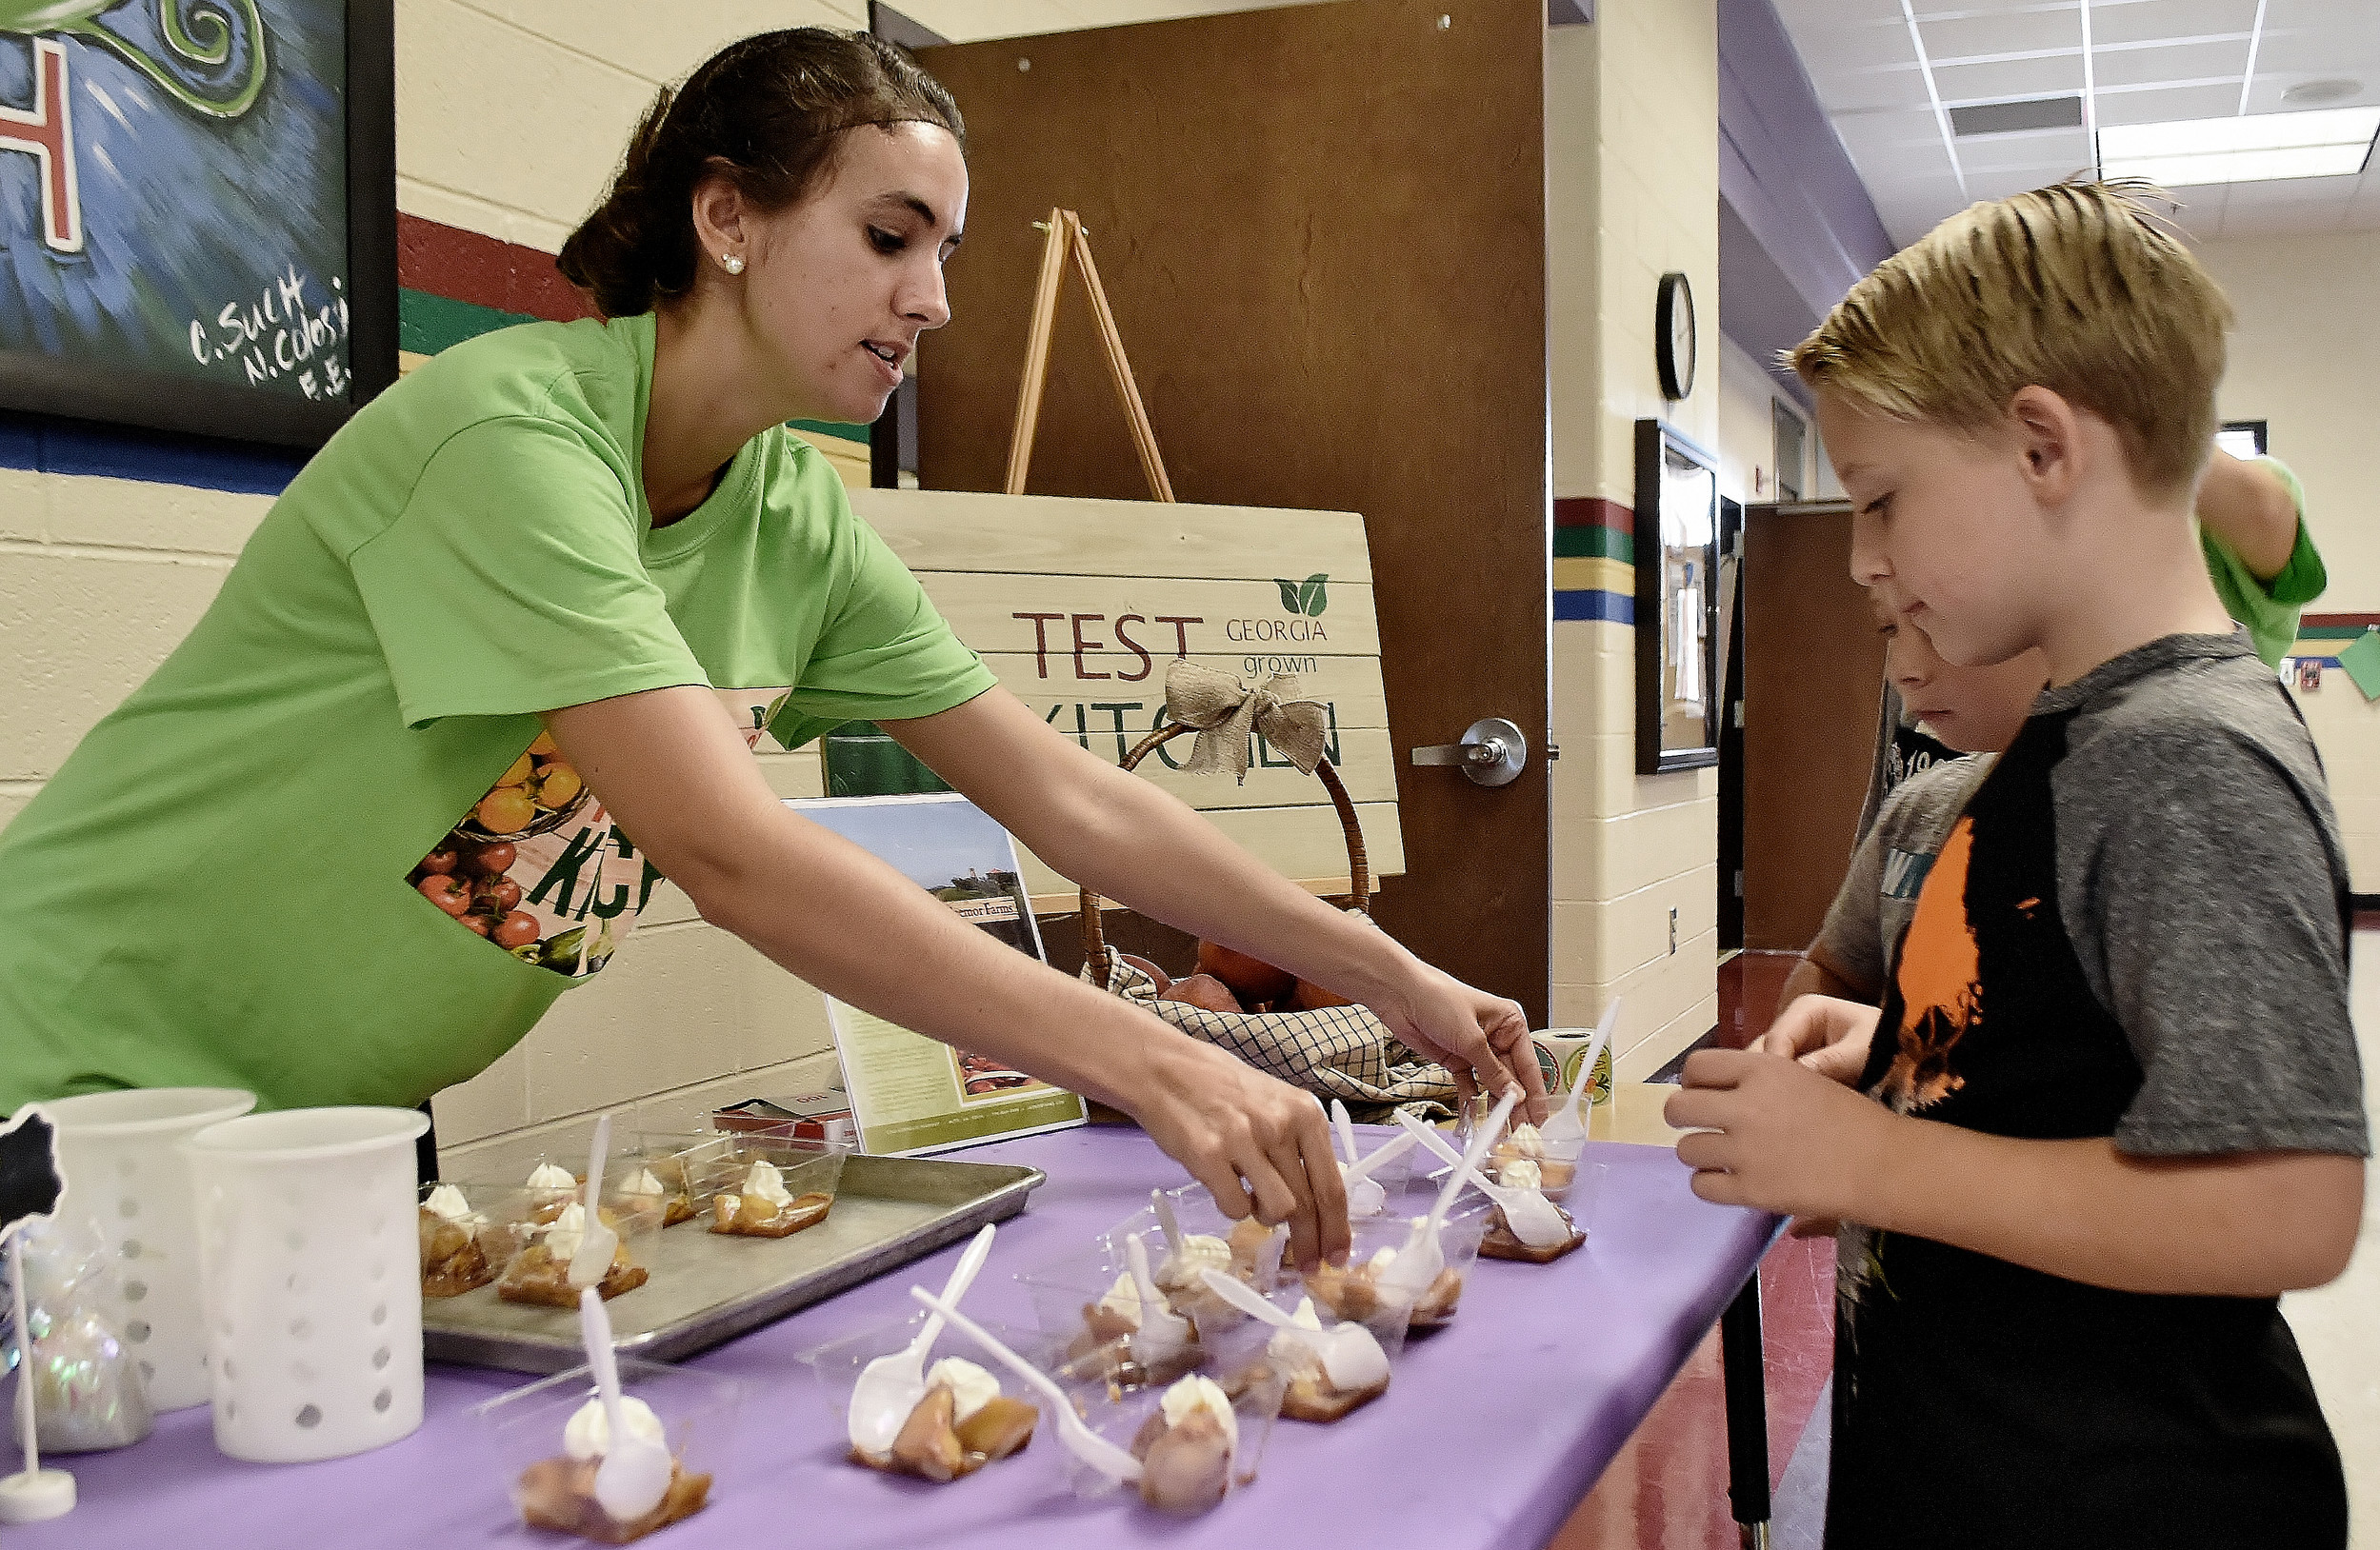 Bartow County School Nutrition Coordinator Emily Rollins serves Caramelized Skillet Peaches to Pine Log Elementary pre-K student Jameson Currie during Wednesday's Georgia Grown Test Kitchen in the school's cafeteria.